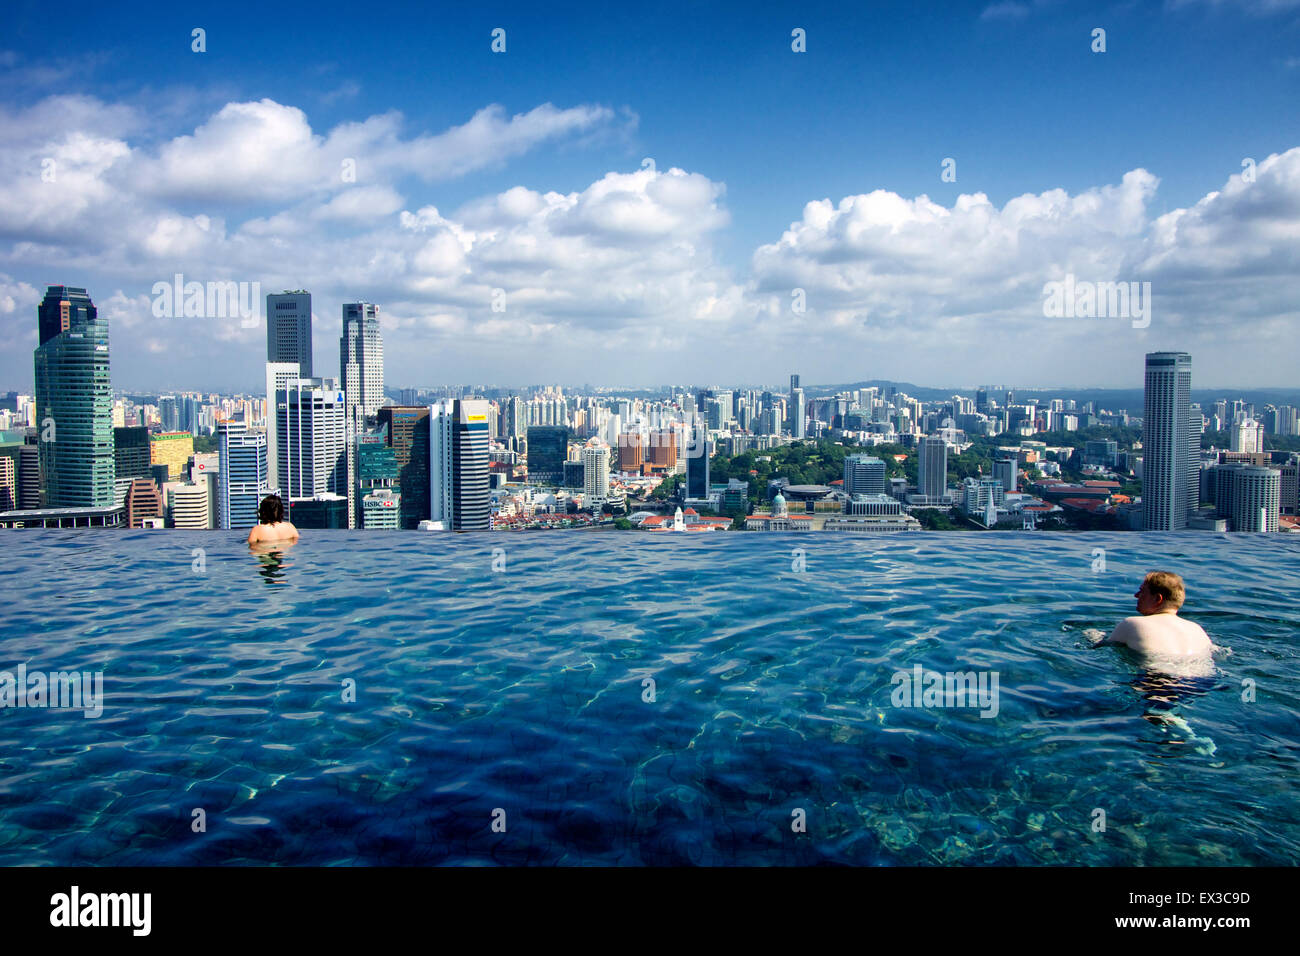 Swimming At Marina Bay Sands Infinity Pool And Enjoying The City Stock Photo 84898057 Alamy